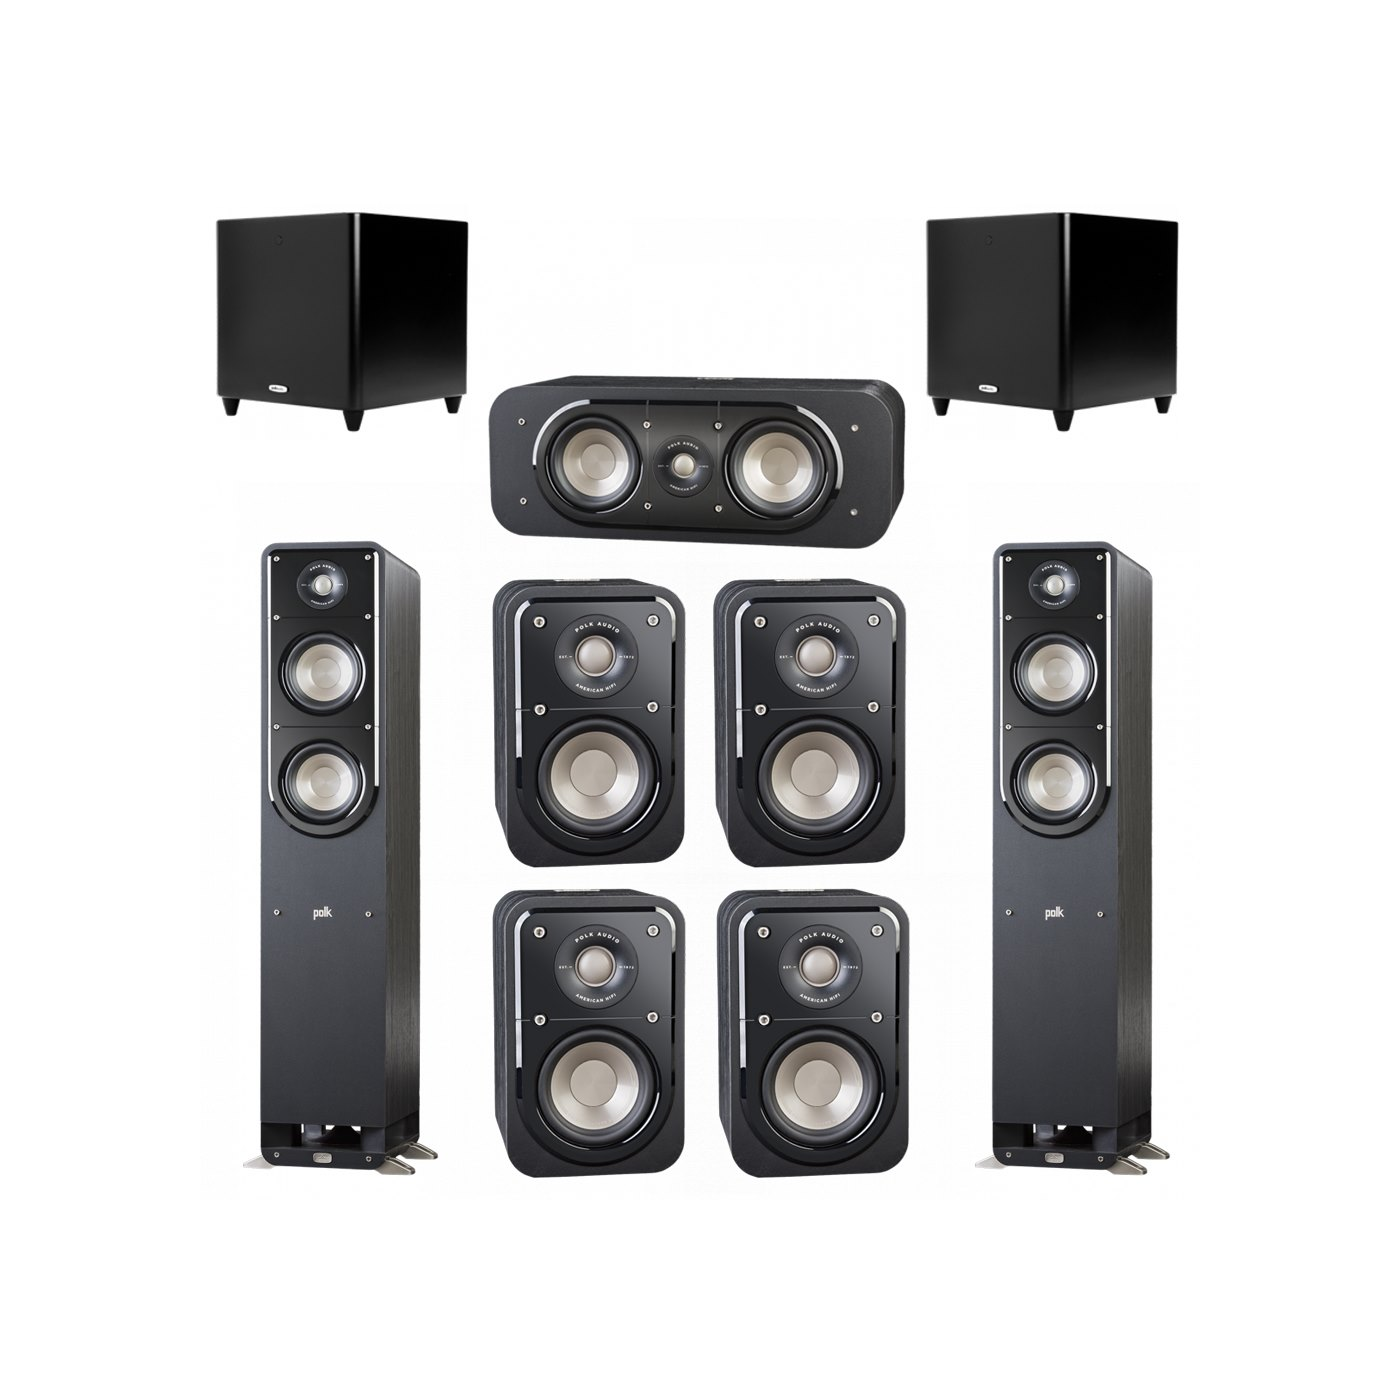 Polk Audio Signature 7.2 System with 2 S50 Tower Speaker, 1 Polk S30 Center Speaker, 4 Polk S10 Bookshelf Speaker, 2 Polk DSW PRO 660 wi Subwoofer